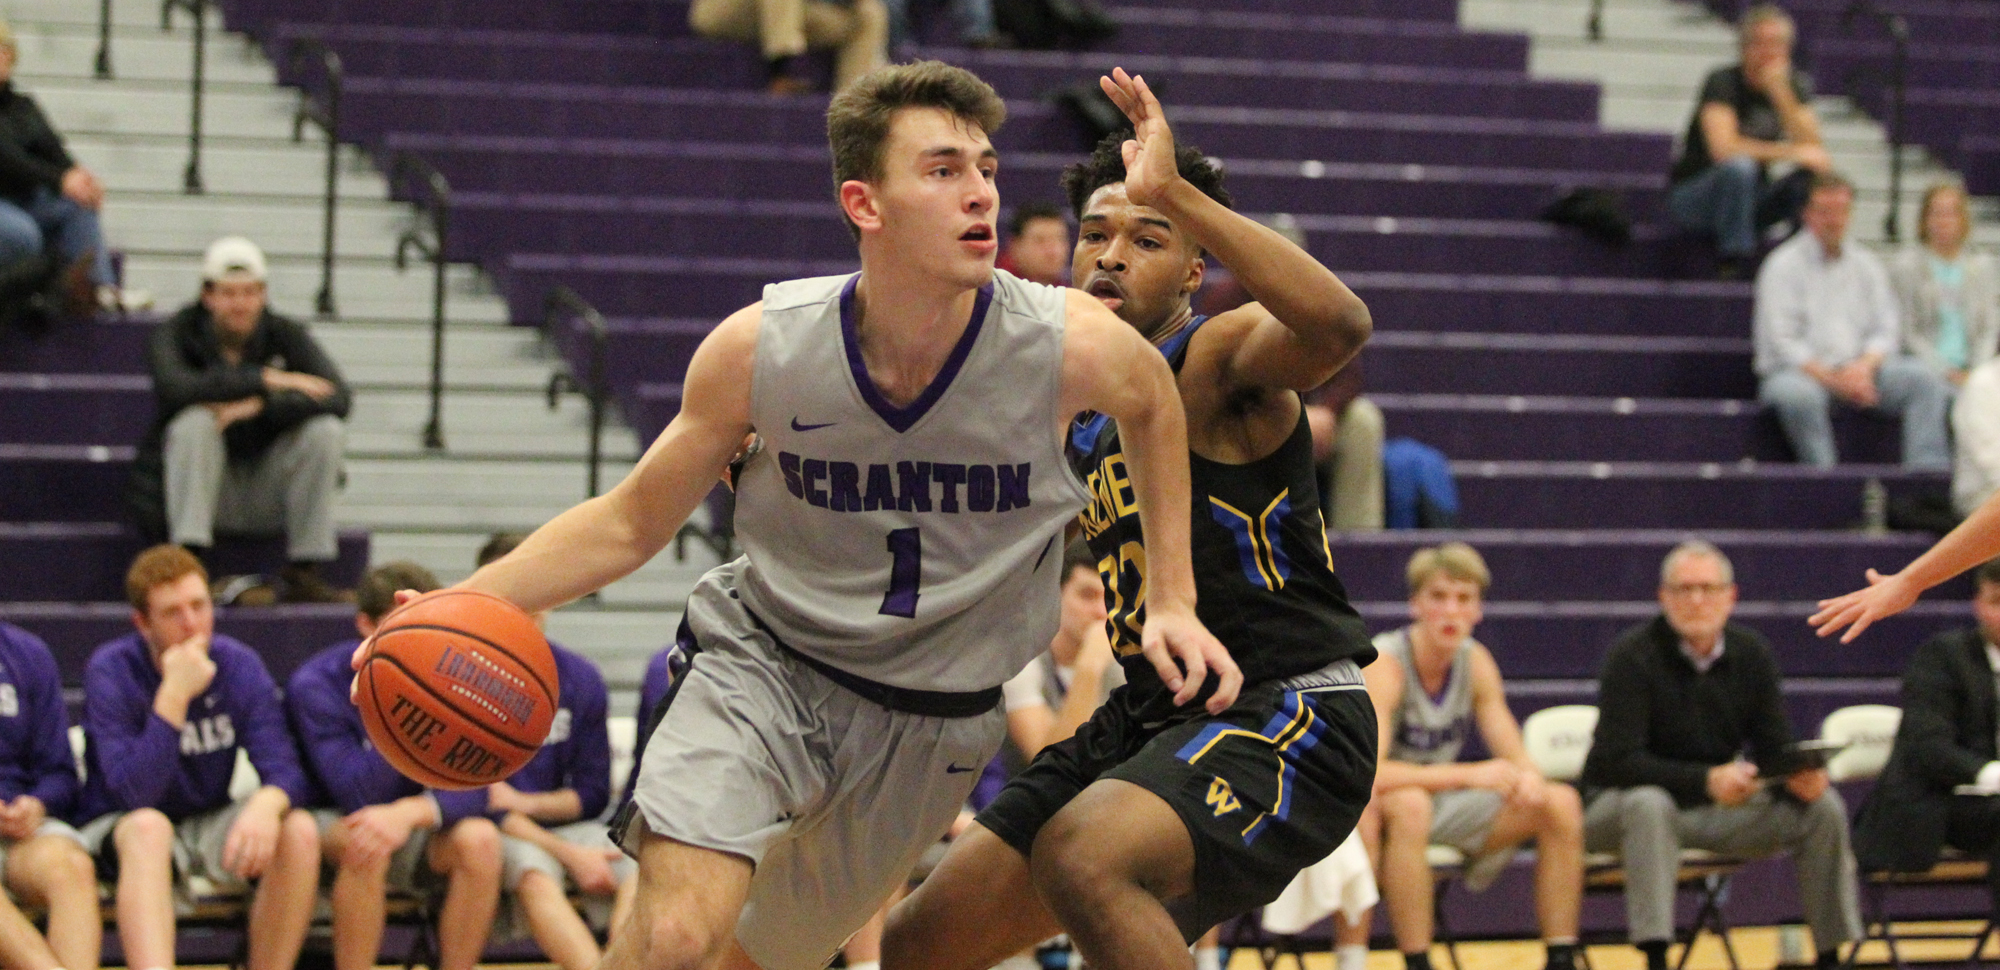 Jackson Danzig scored 10 points and had eight rebounds, four assists, and three blocks in Scranton's win over Widener on Tuesday night.